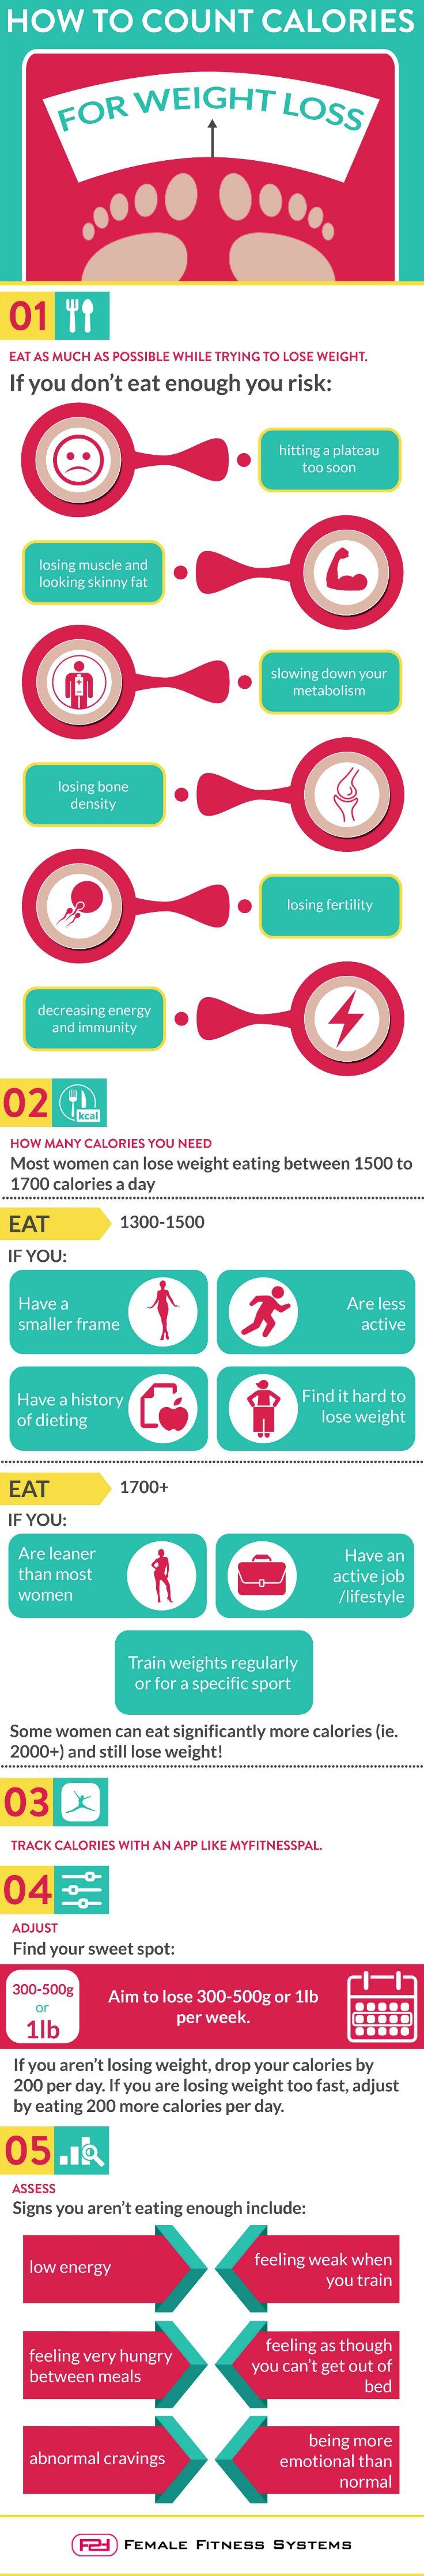 How To Count Calories For Weight Loss. Simple advice for finding your sweet spot when it comes to setting your calories to lose weight. Here's an easy way to know how much to eat and how to adjust if it's not working for you! #calories #weightloss